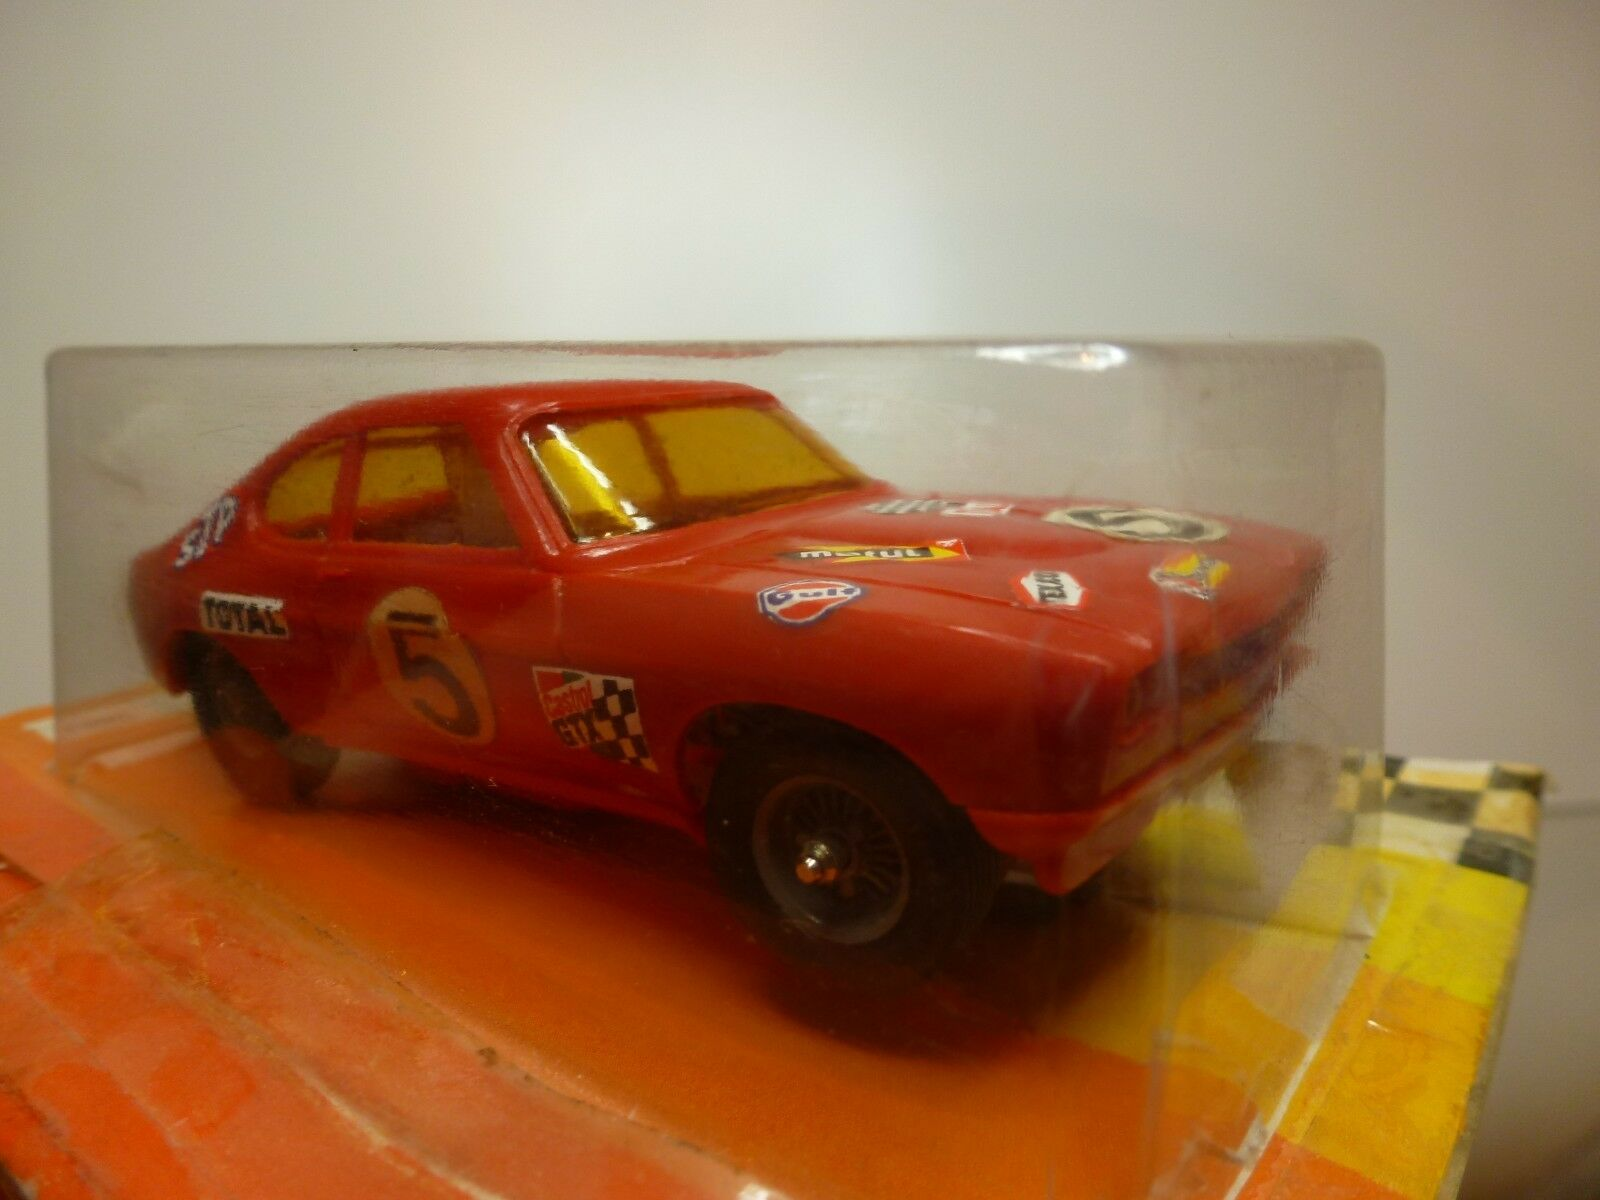 JOUEF JOUEF JOUEF 3657 SLOT CAR FORD CAPRI - rosso L10.0cm - RARE - GOOD IN CARD-BLISTER 52c808